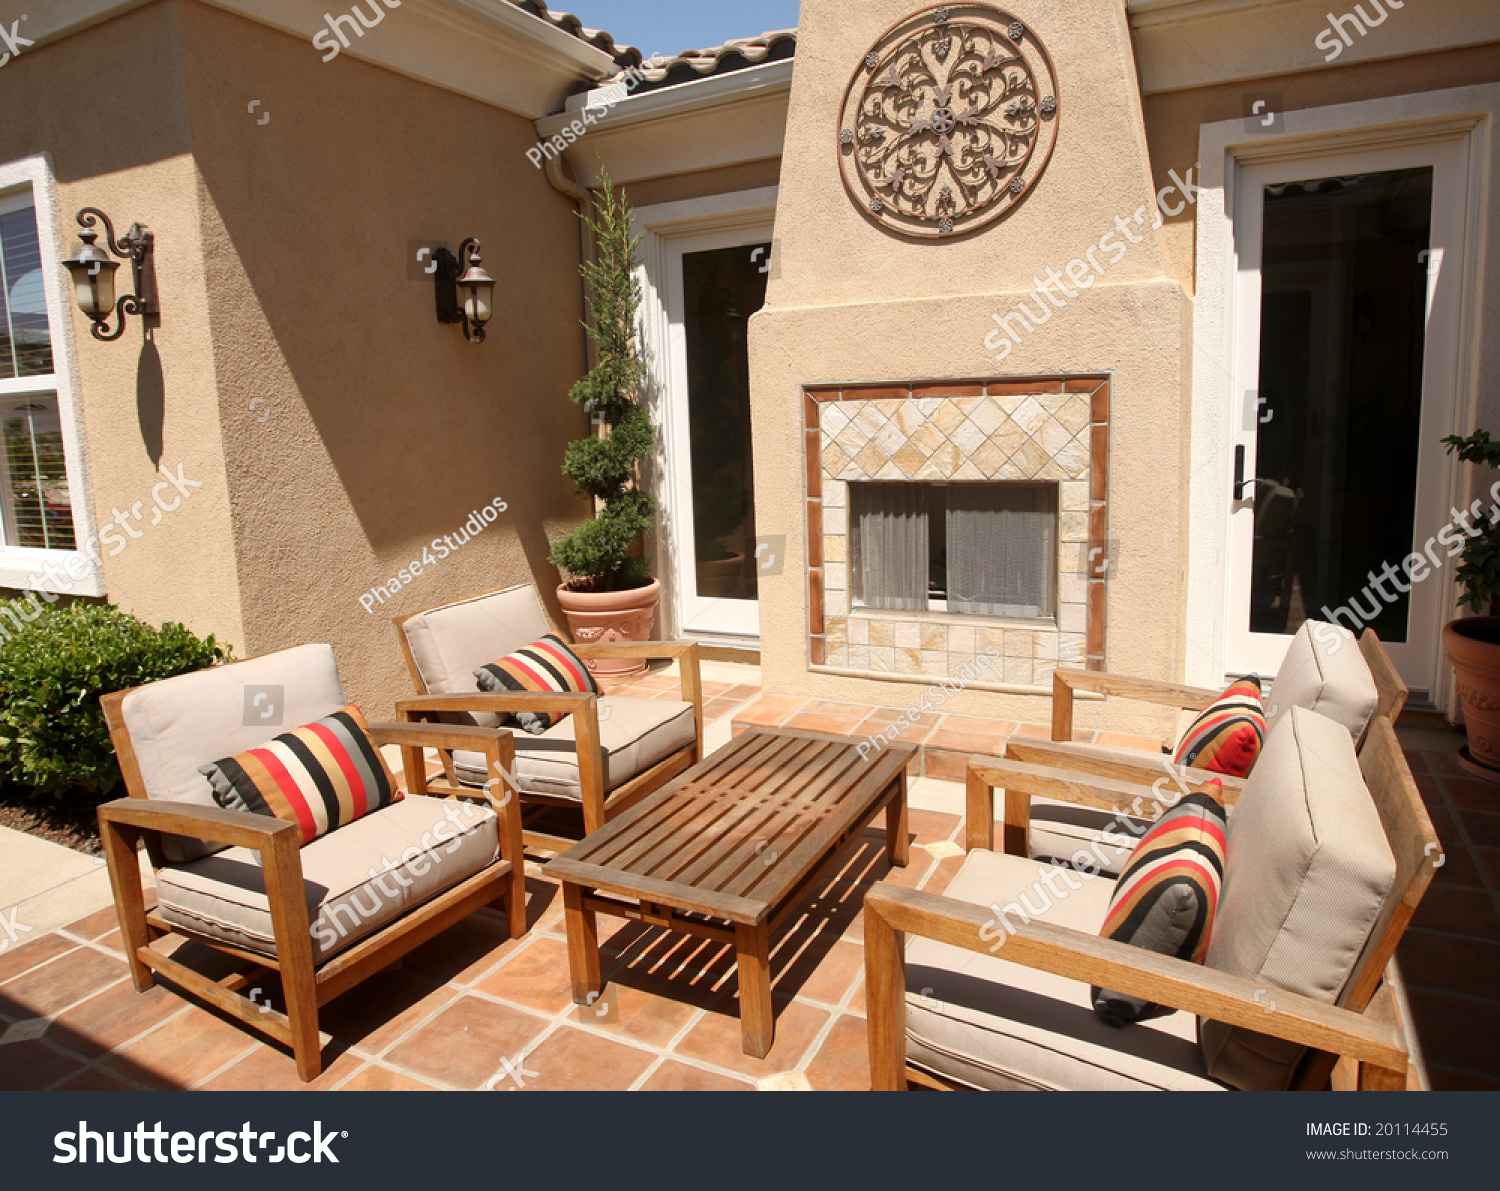 https www shutterstock com image photo contemporary outdoor patio fireplace 20114455